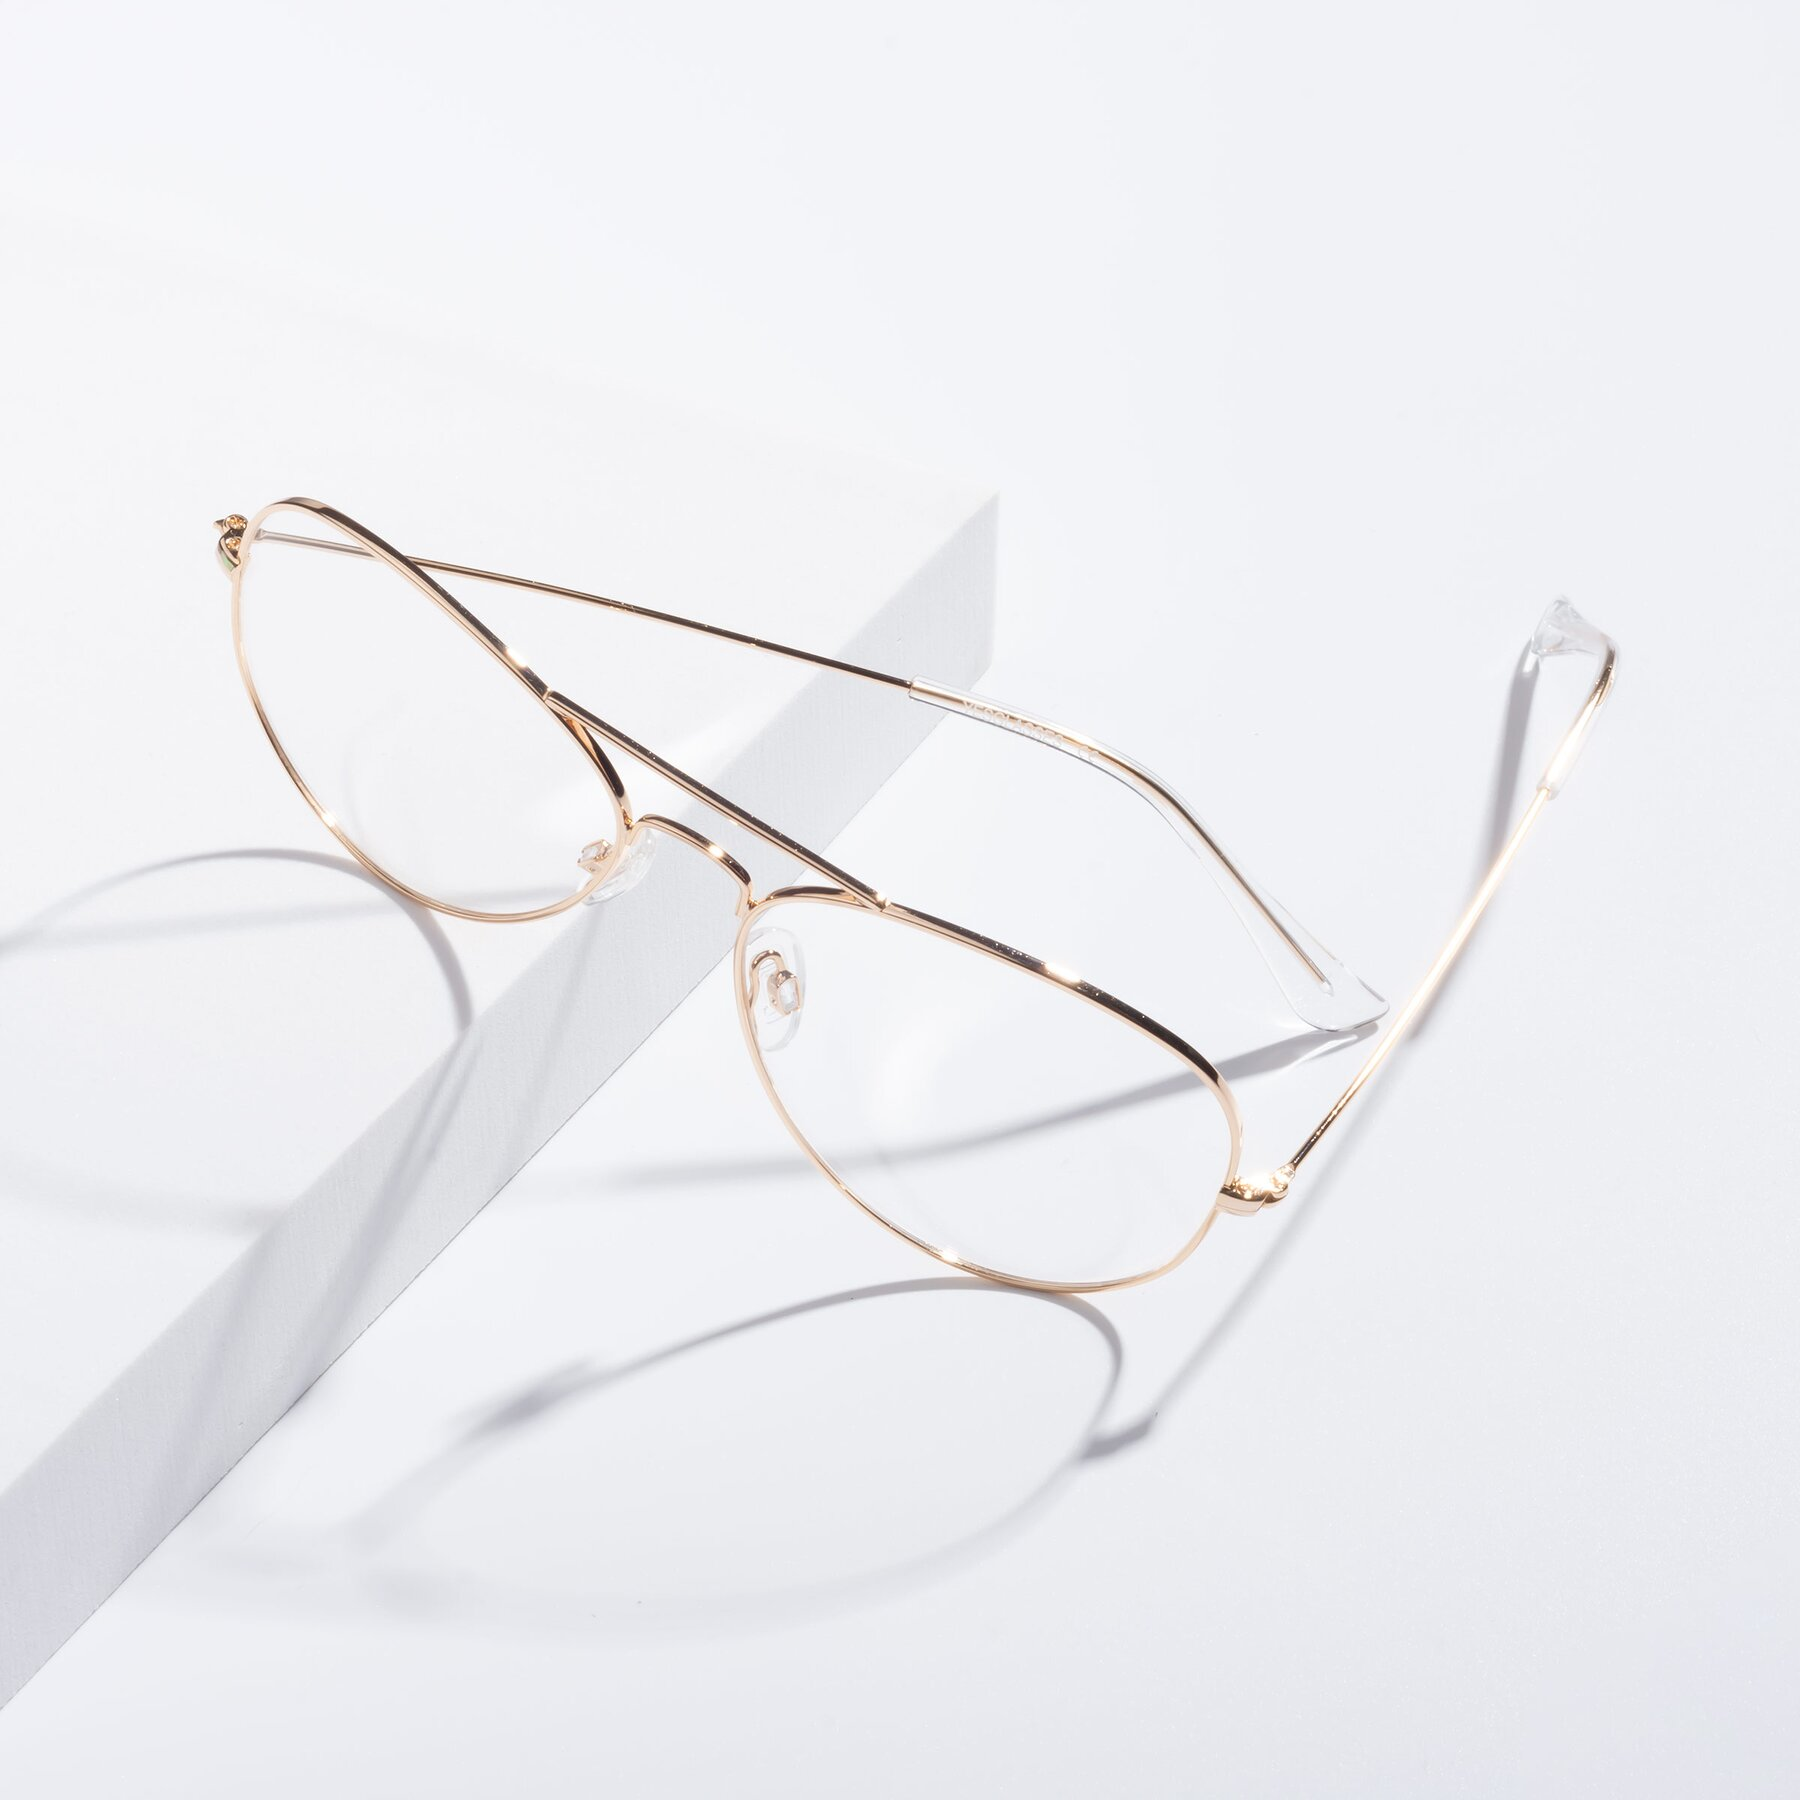 Lifestyle photography #2 of SSR035 in Shiny Gold with Clear Eyeglass Lenses